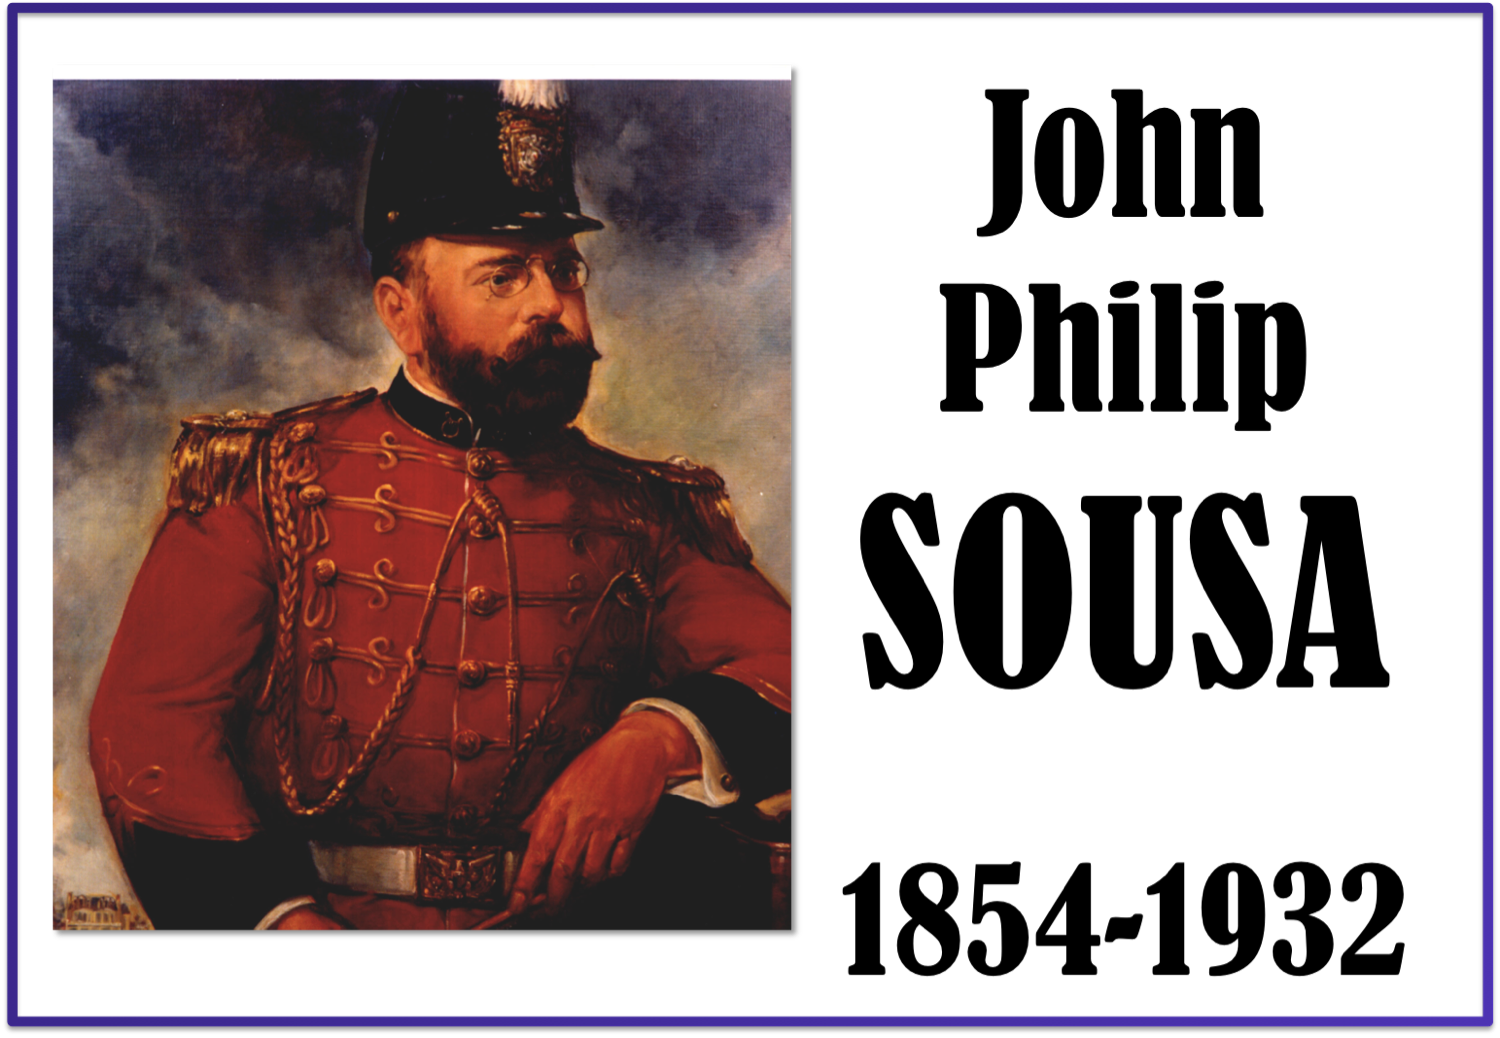 the life and music career of john philip sousa Sousa began his career playing violin and studying music theory and composition under john esputa and george felix benkert his father enlisted him in the united states marine band as an .